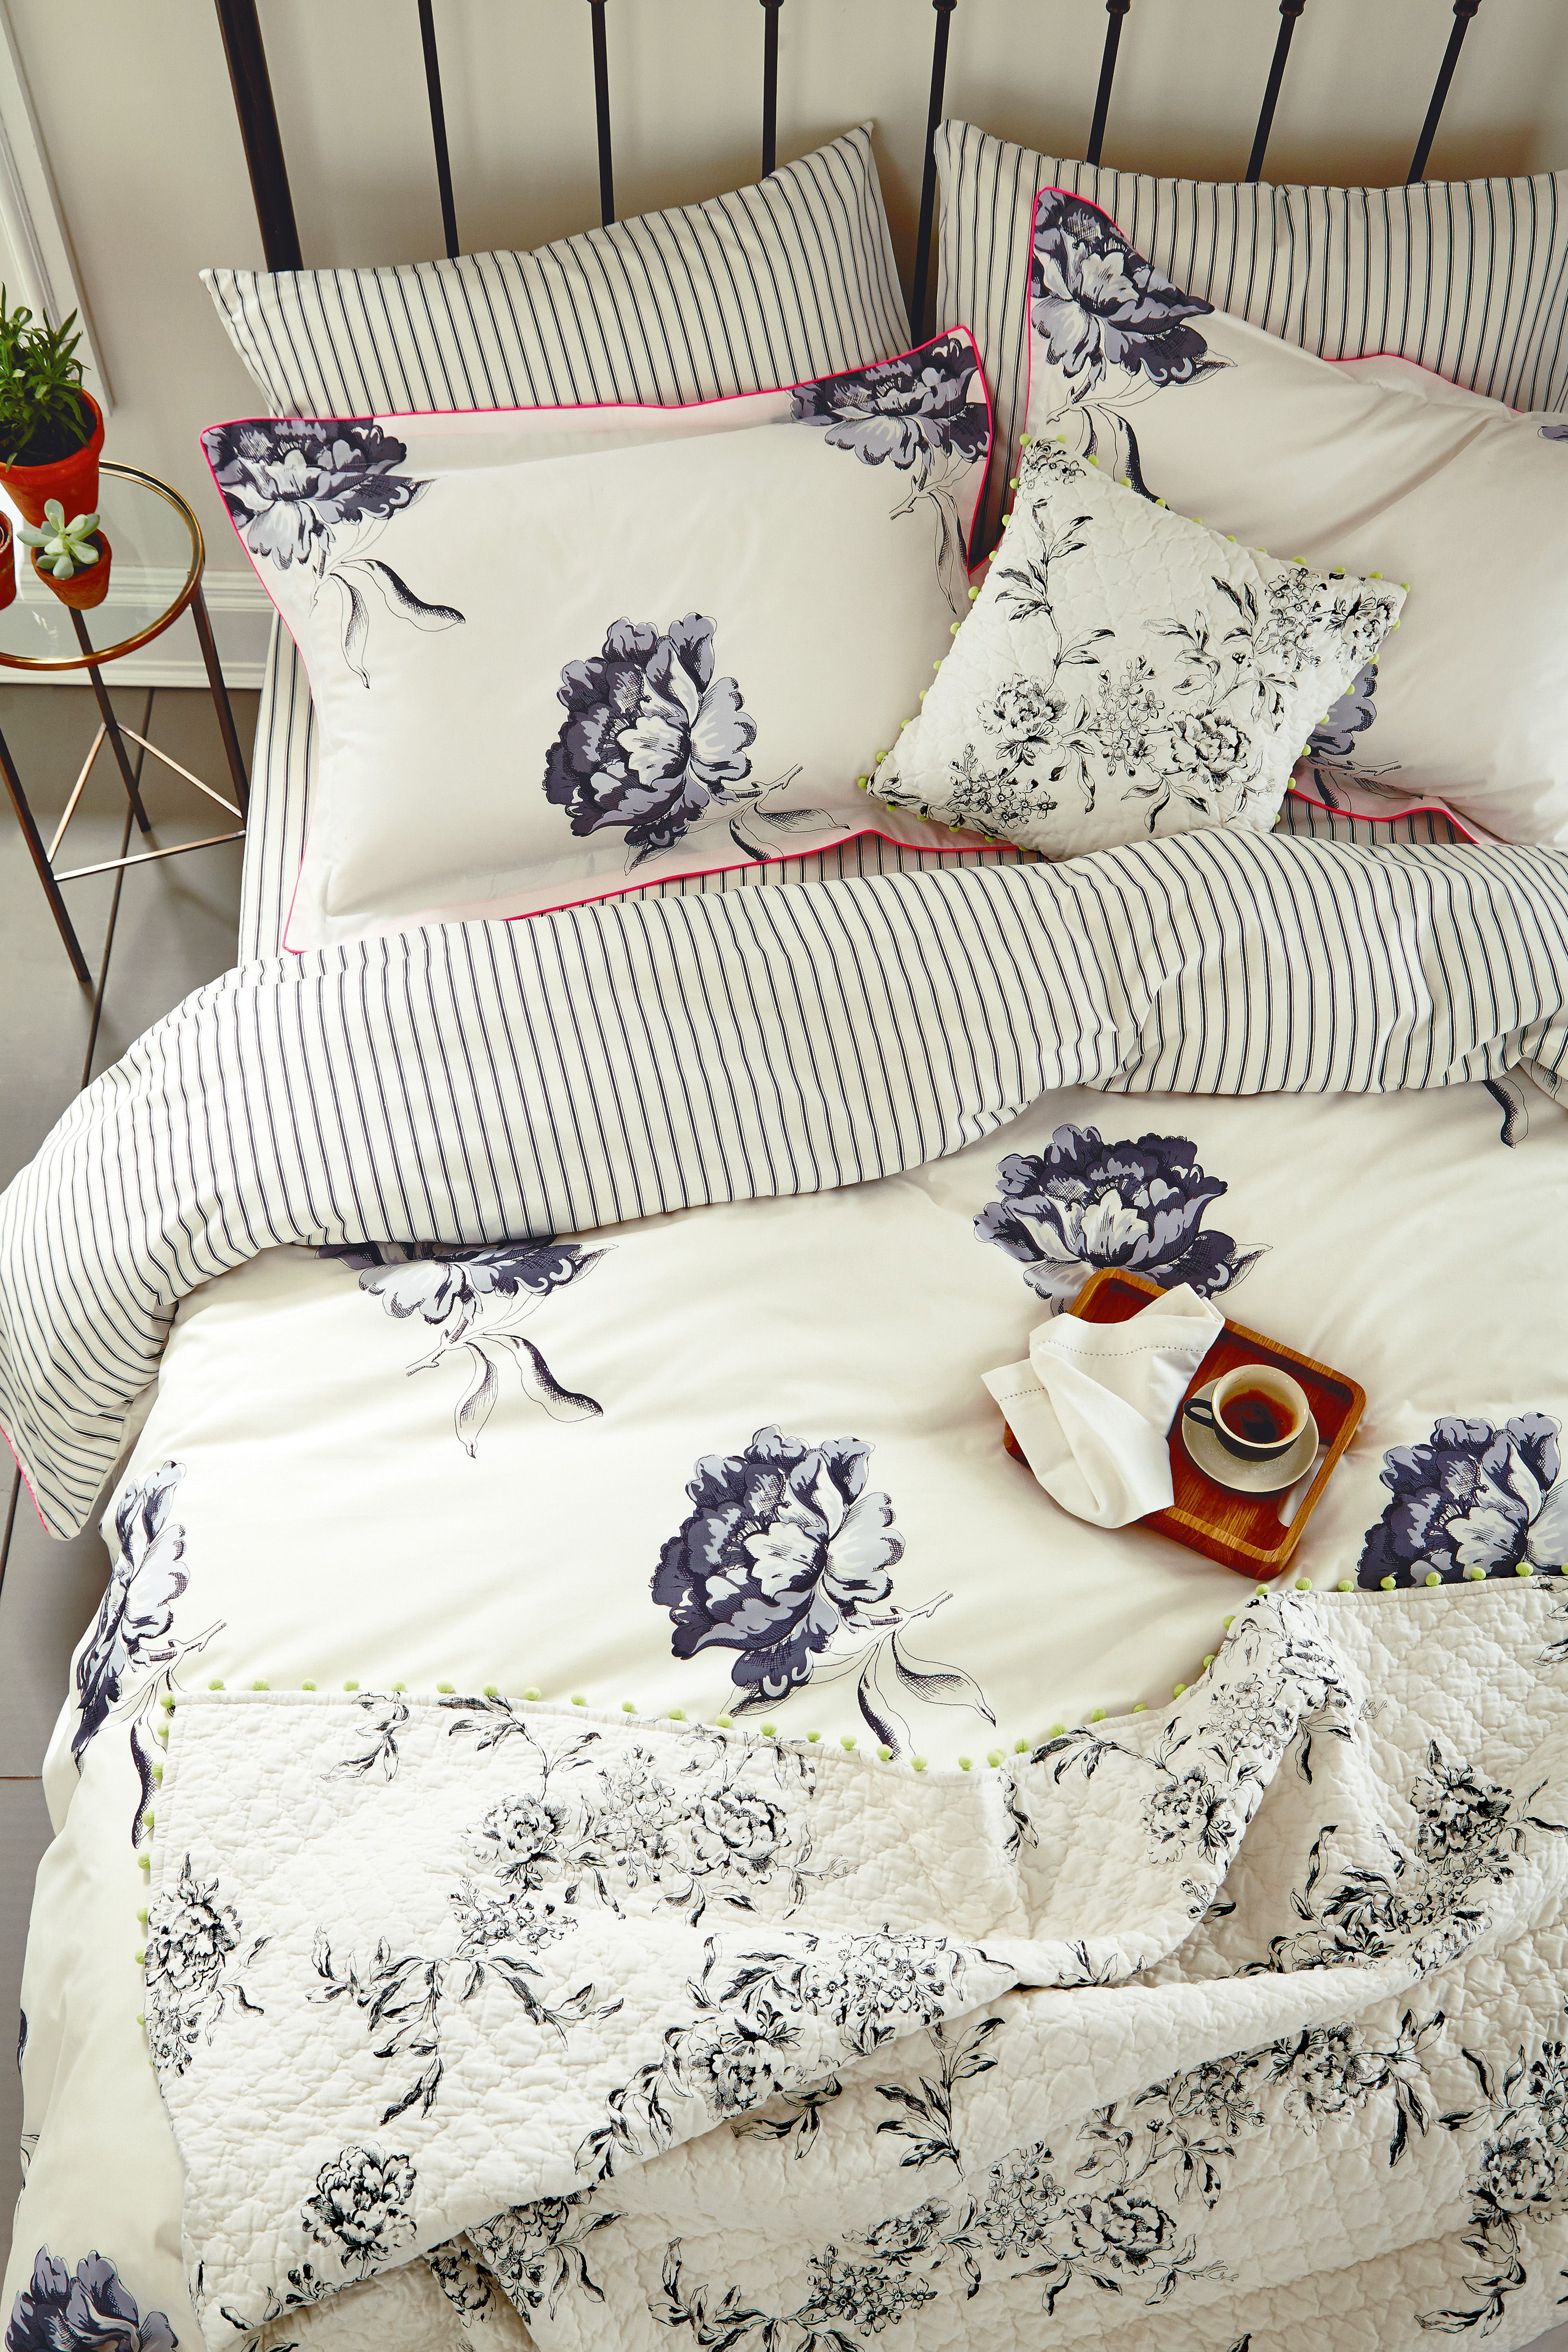 Joules Monochrome Regency Floral bedlinen with the